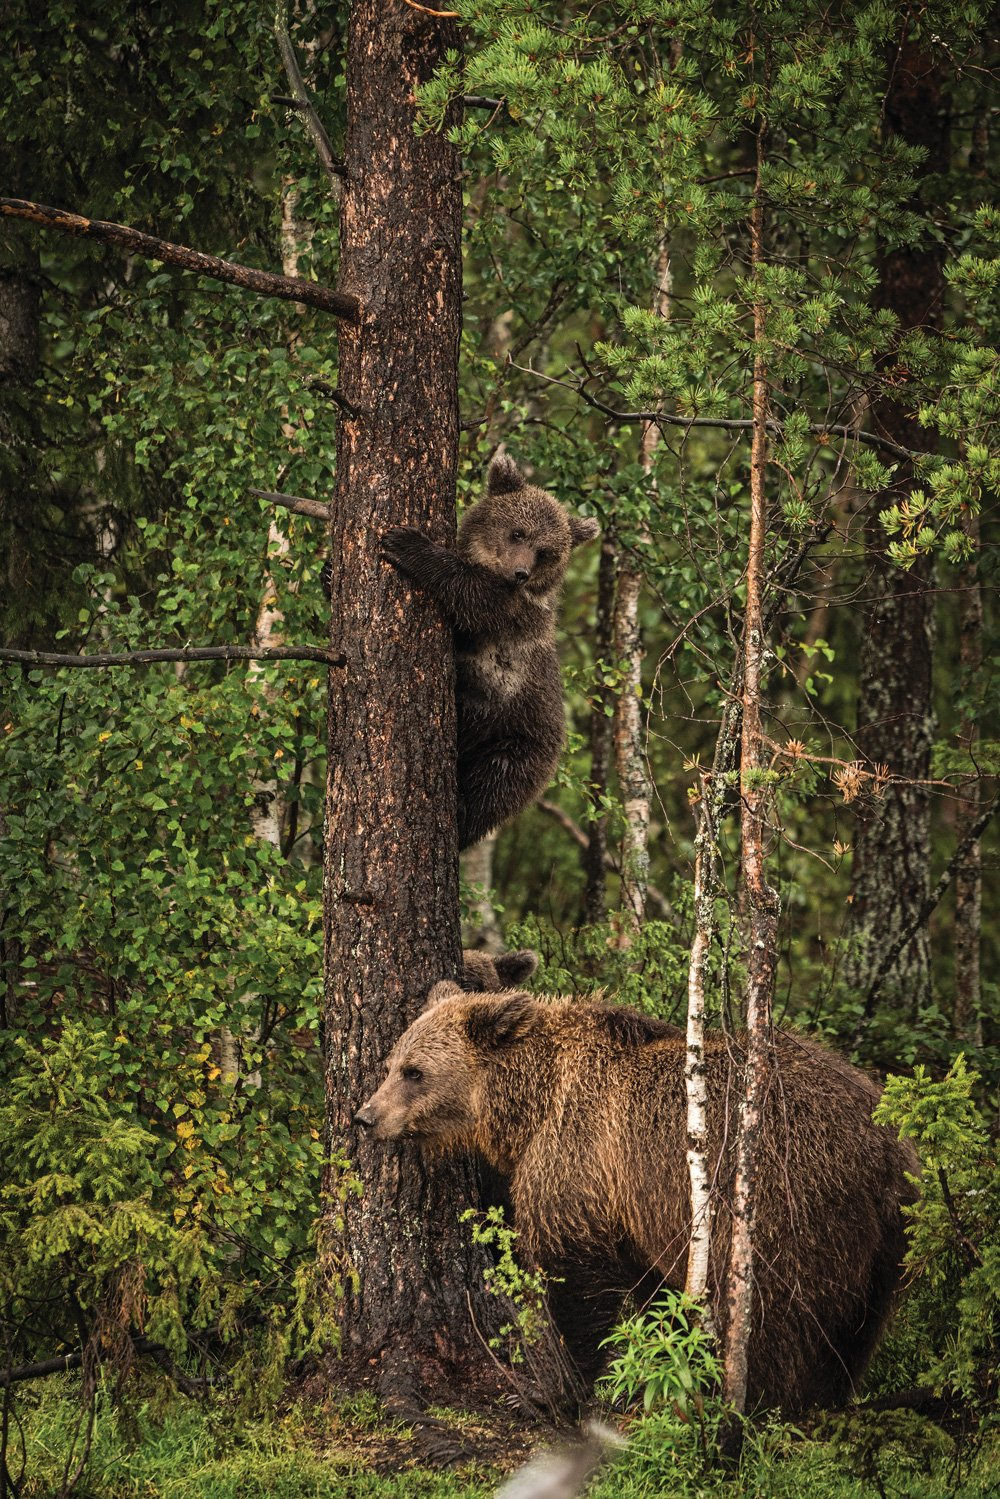 Male black bear and baby bear in Finland